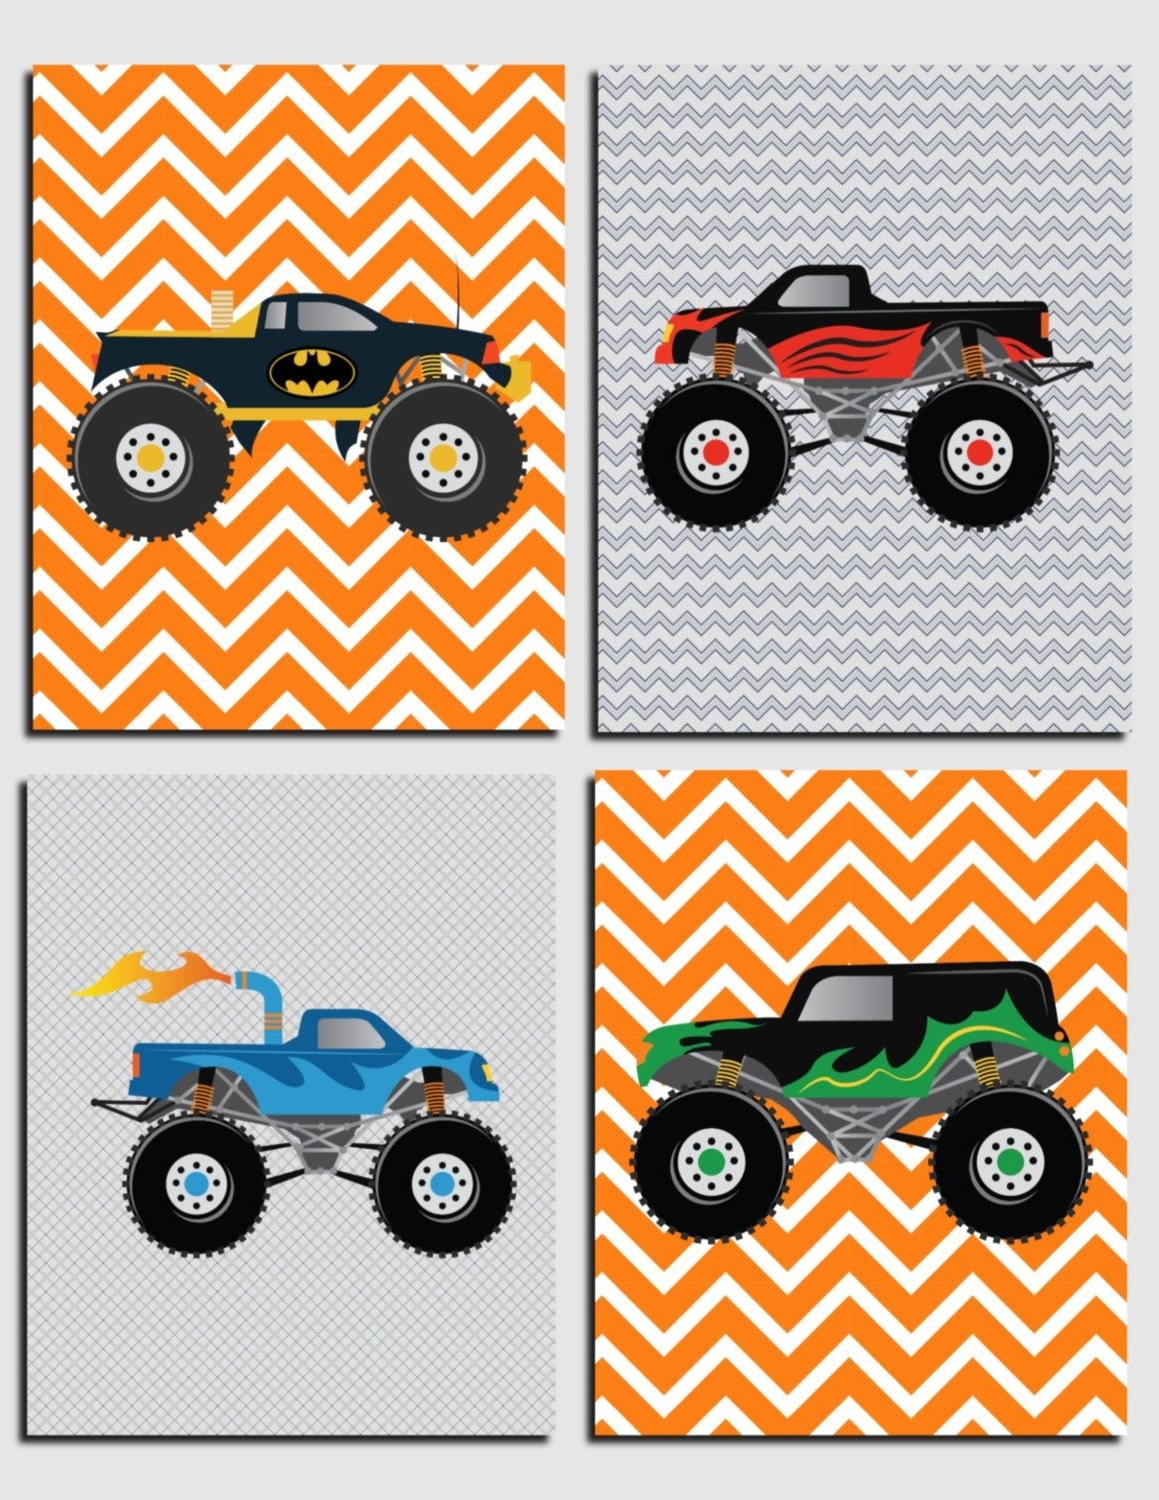 Fashionable Monster Trucks Wall Art, Boy Nursery Art, Kids Wall Art, Toddler Intended For Cars Theme Canvas Wall Art (View 10 of 15)